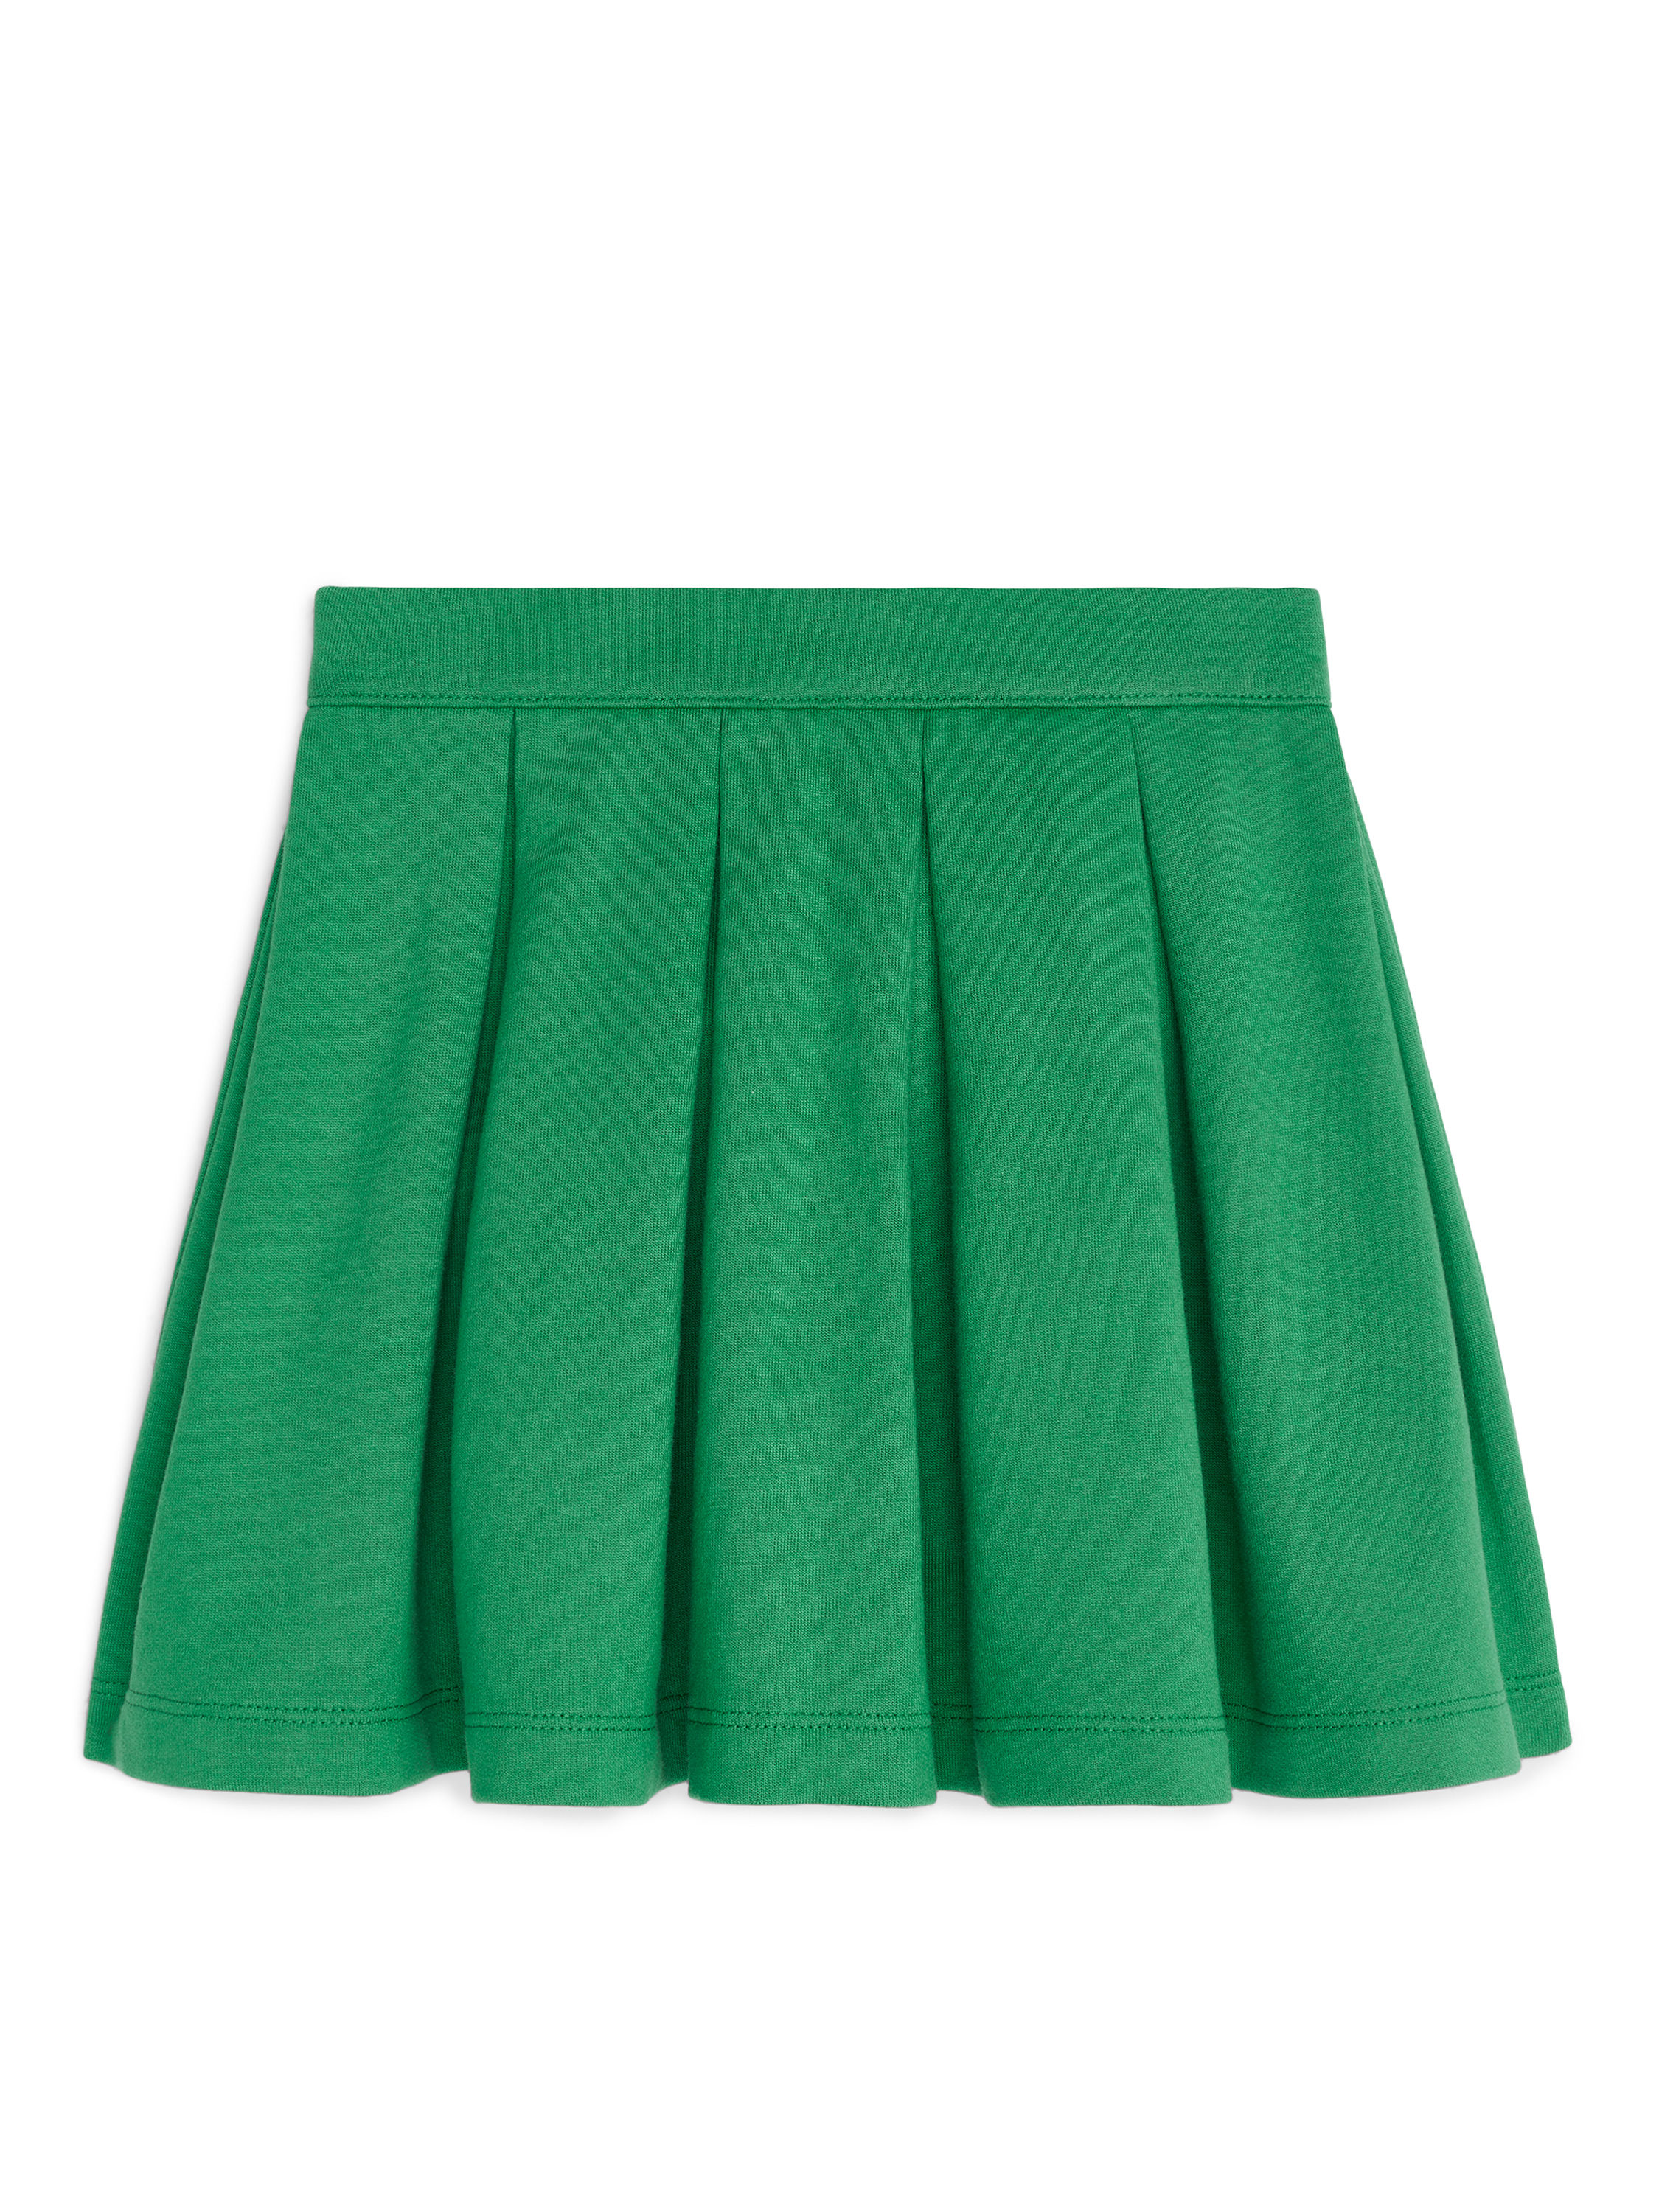 Fabric Swatch image of Arket french terry skirt in green